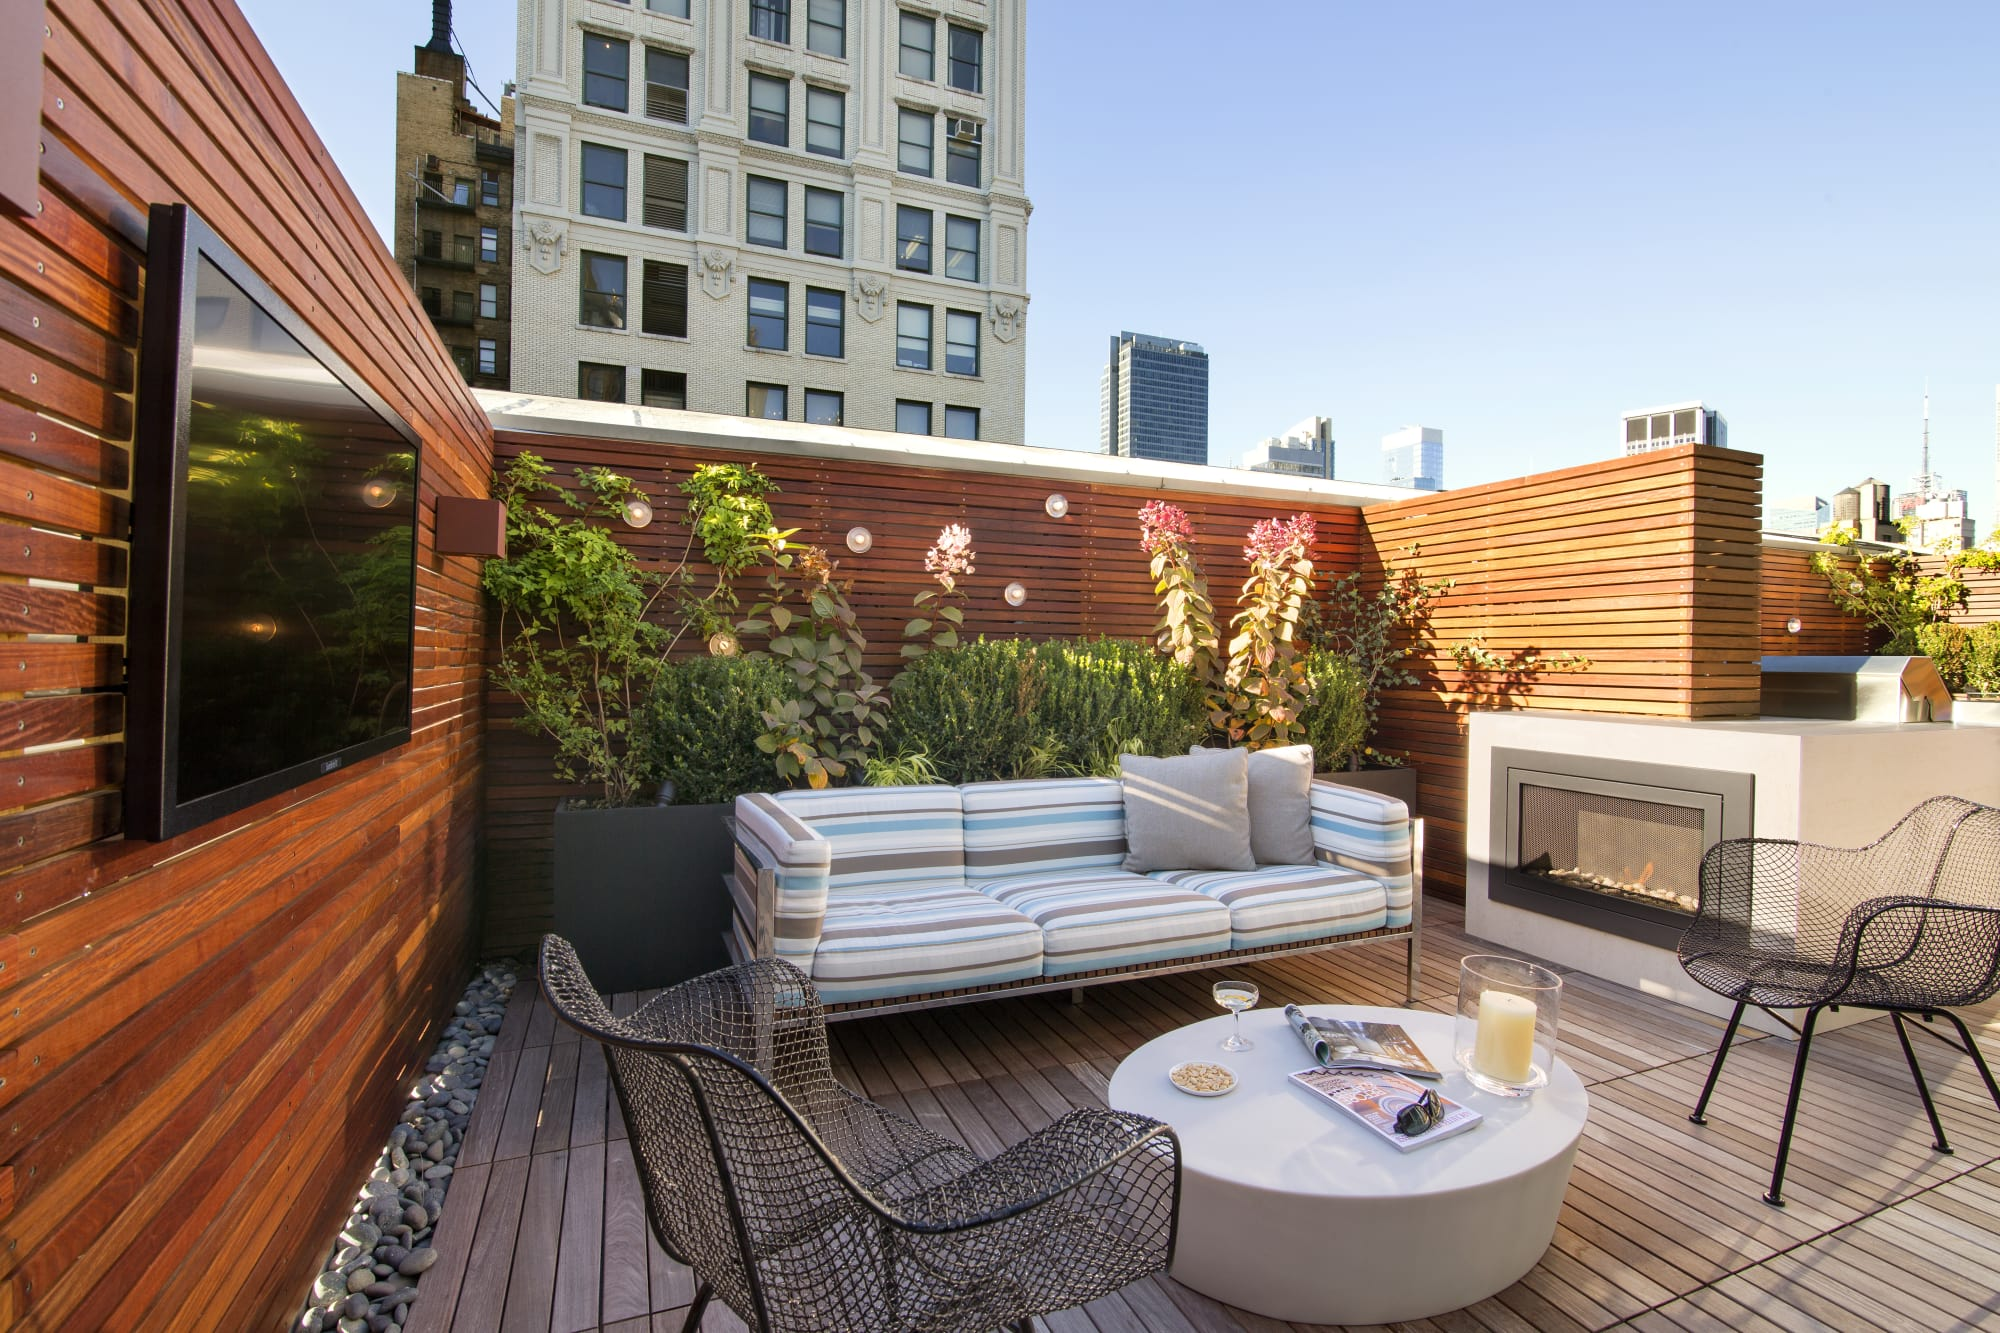 Interior Design by Michael Wood Interiors seen at New York, New York - Fifth Avenue Terrace